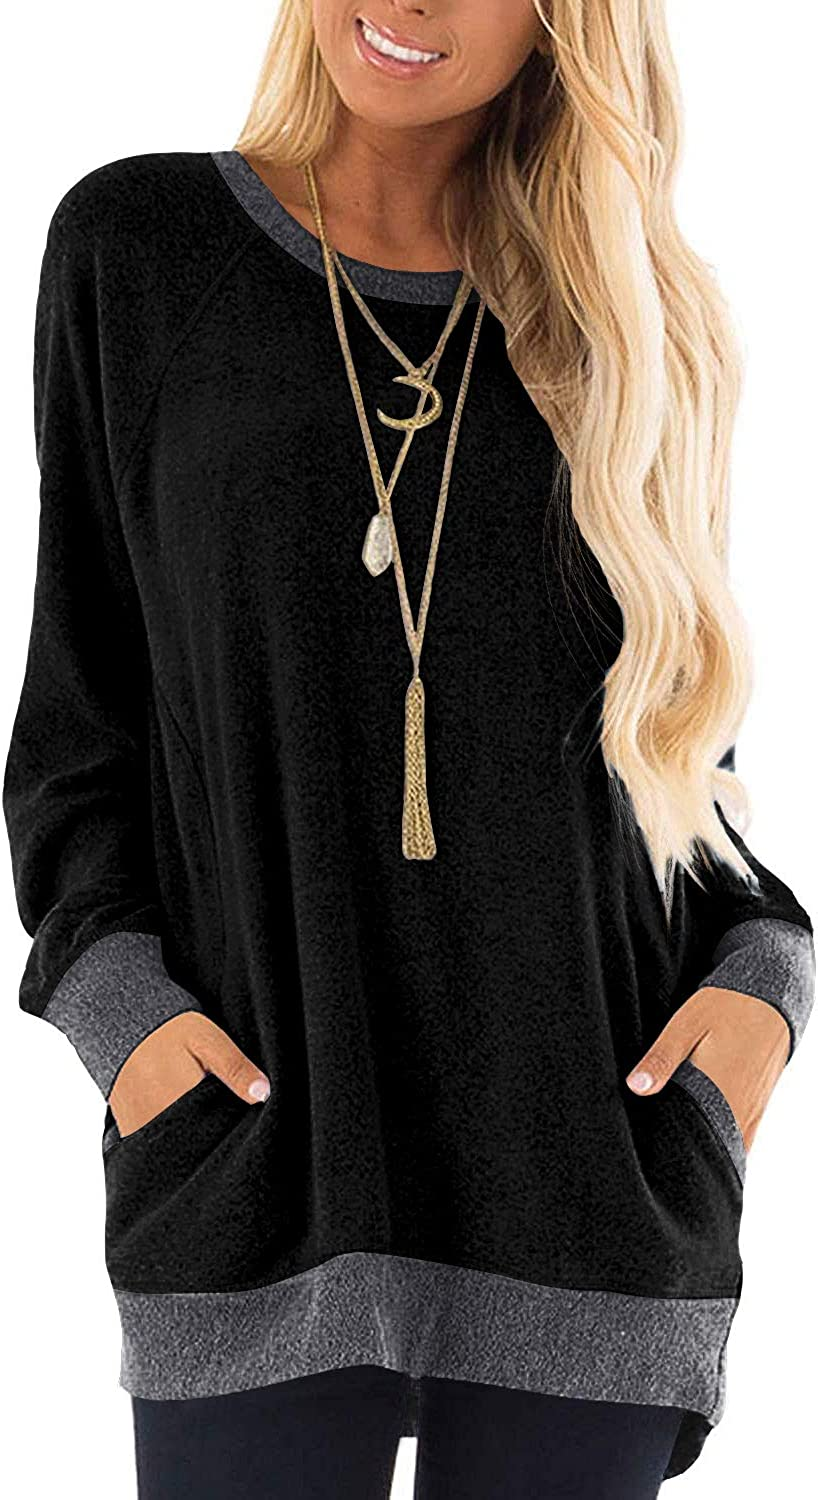 SNOWSONG Womens Pullover Sweatshirt V Neck Tunic Tops Loose Graphic Print Blouse with Pockets